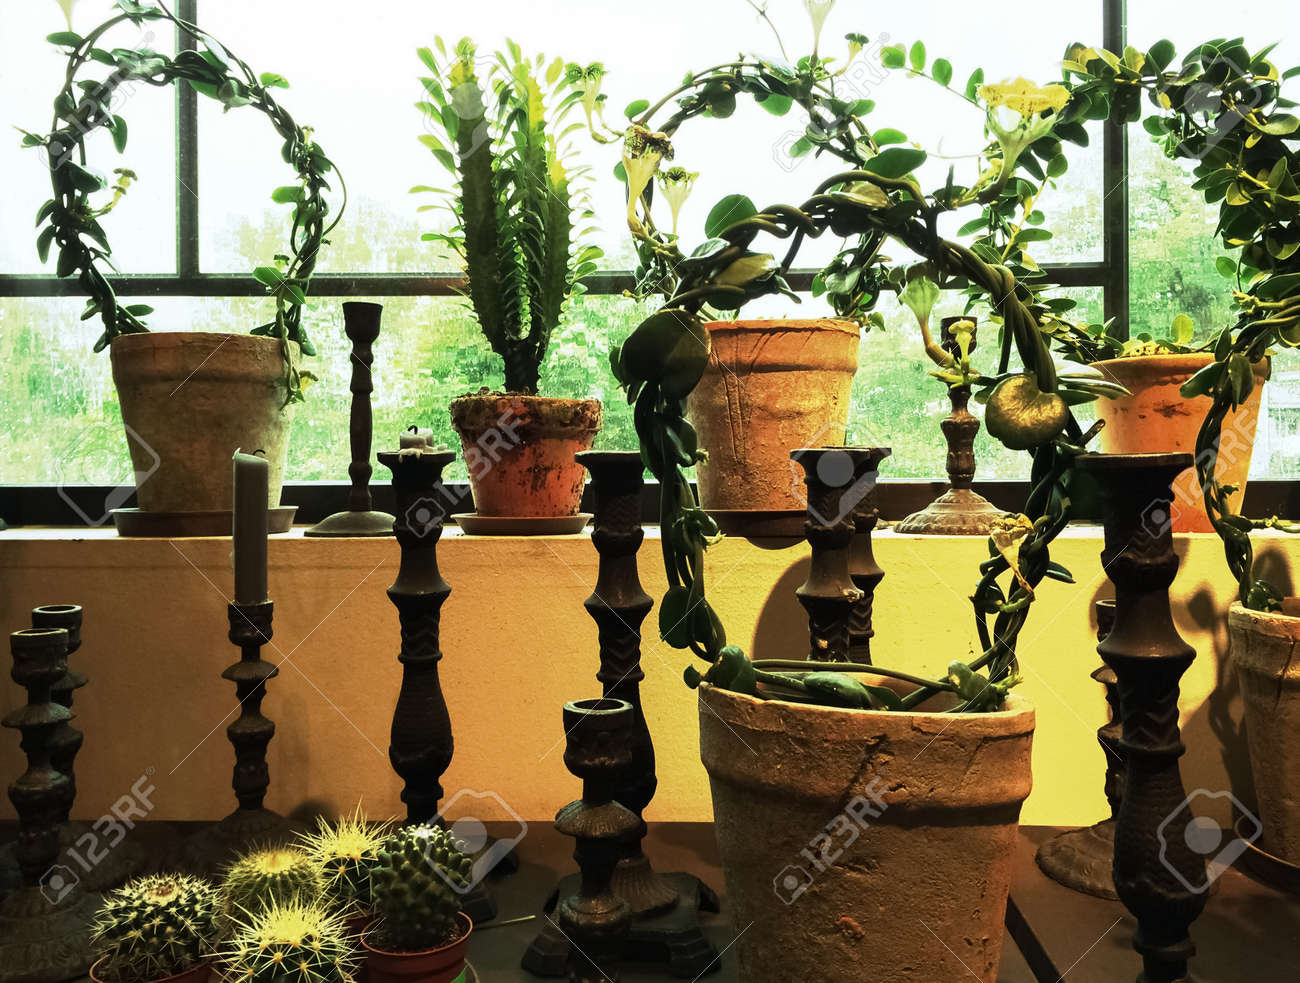 Candles and green plants in clay pots decorating a window.